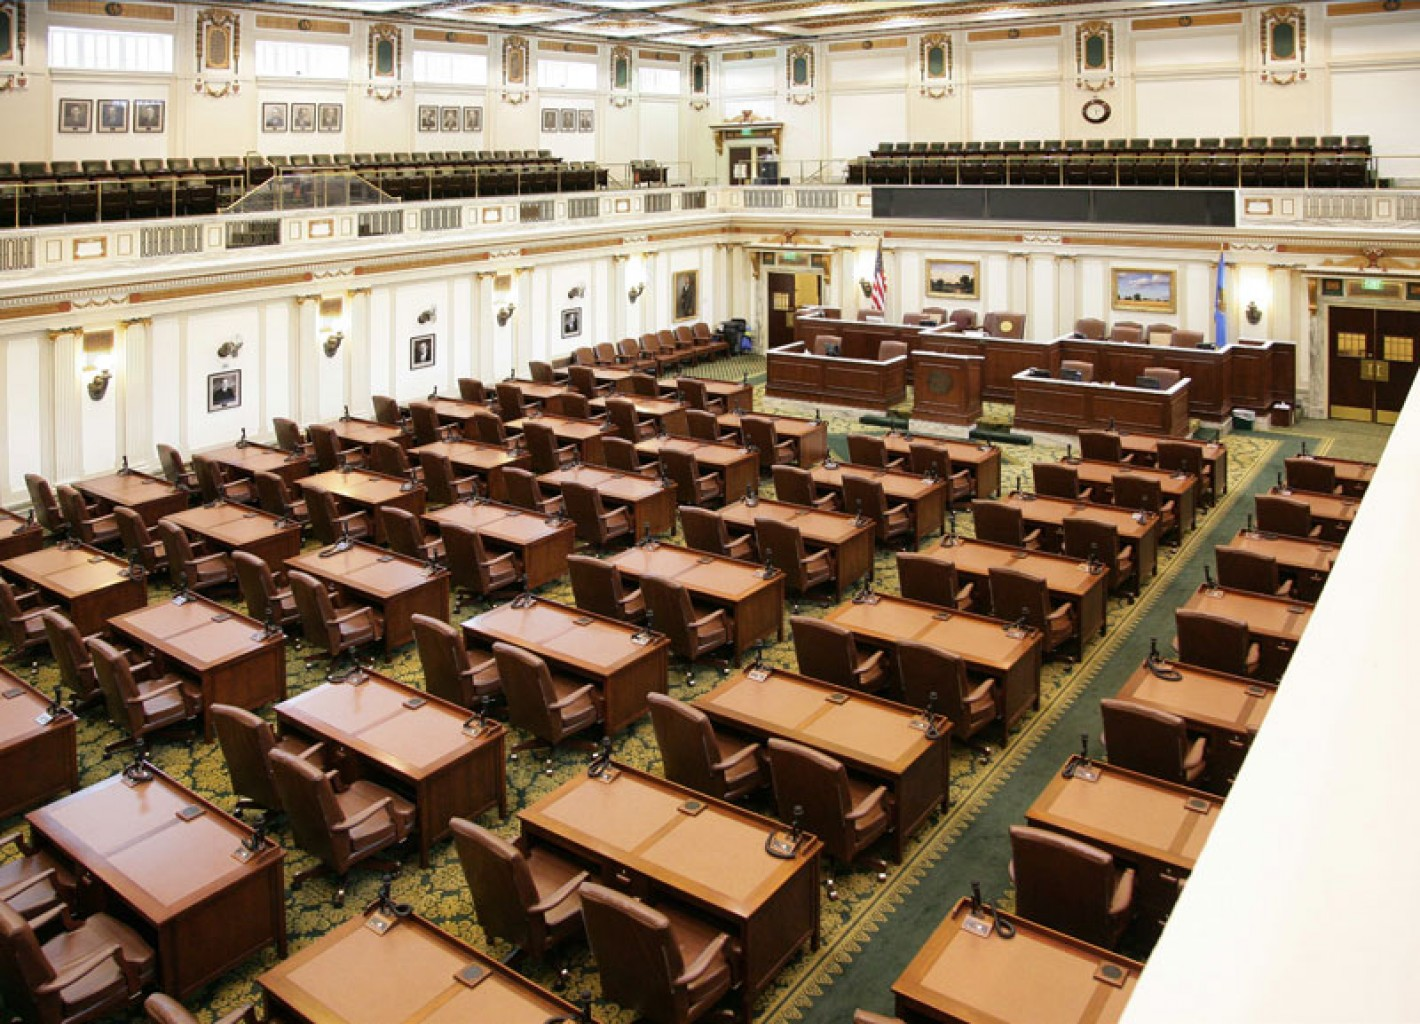 House Passes $8.1 Billion State Budget Budget Puts $230 Million into Savings, New Money into Classrooms, Teacher Pay Raises and Healthcare